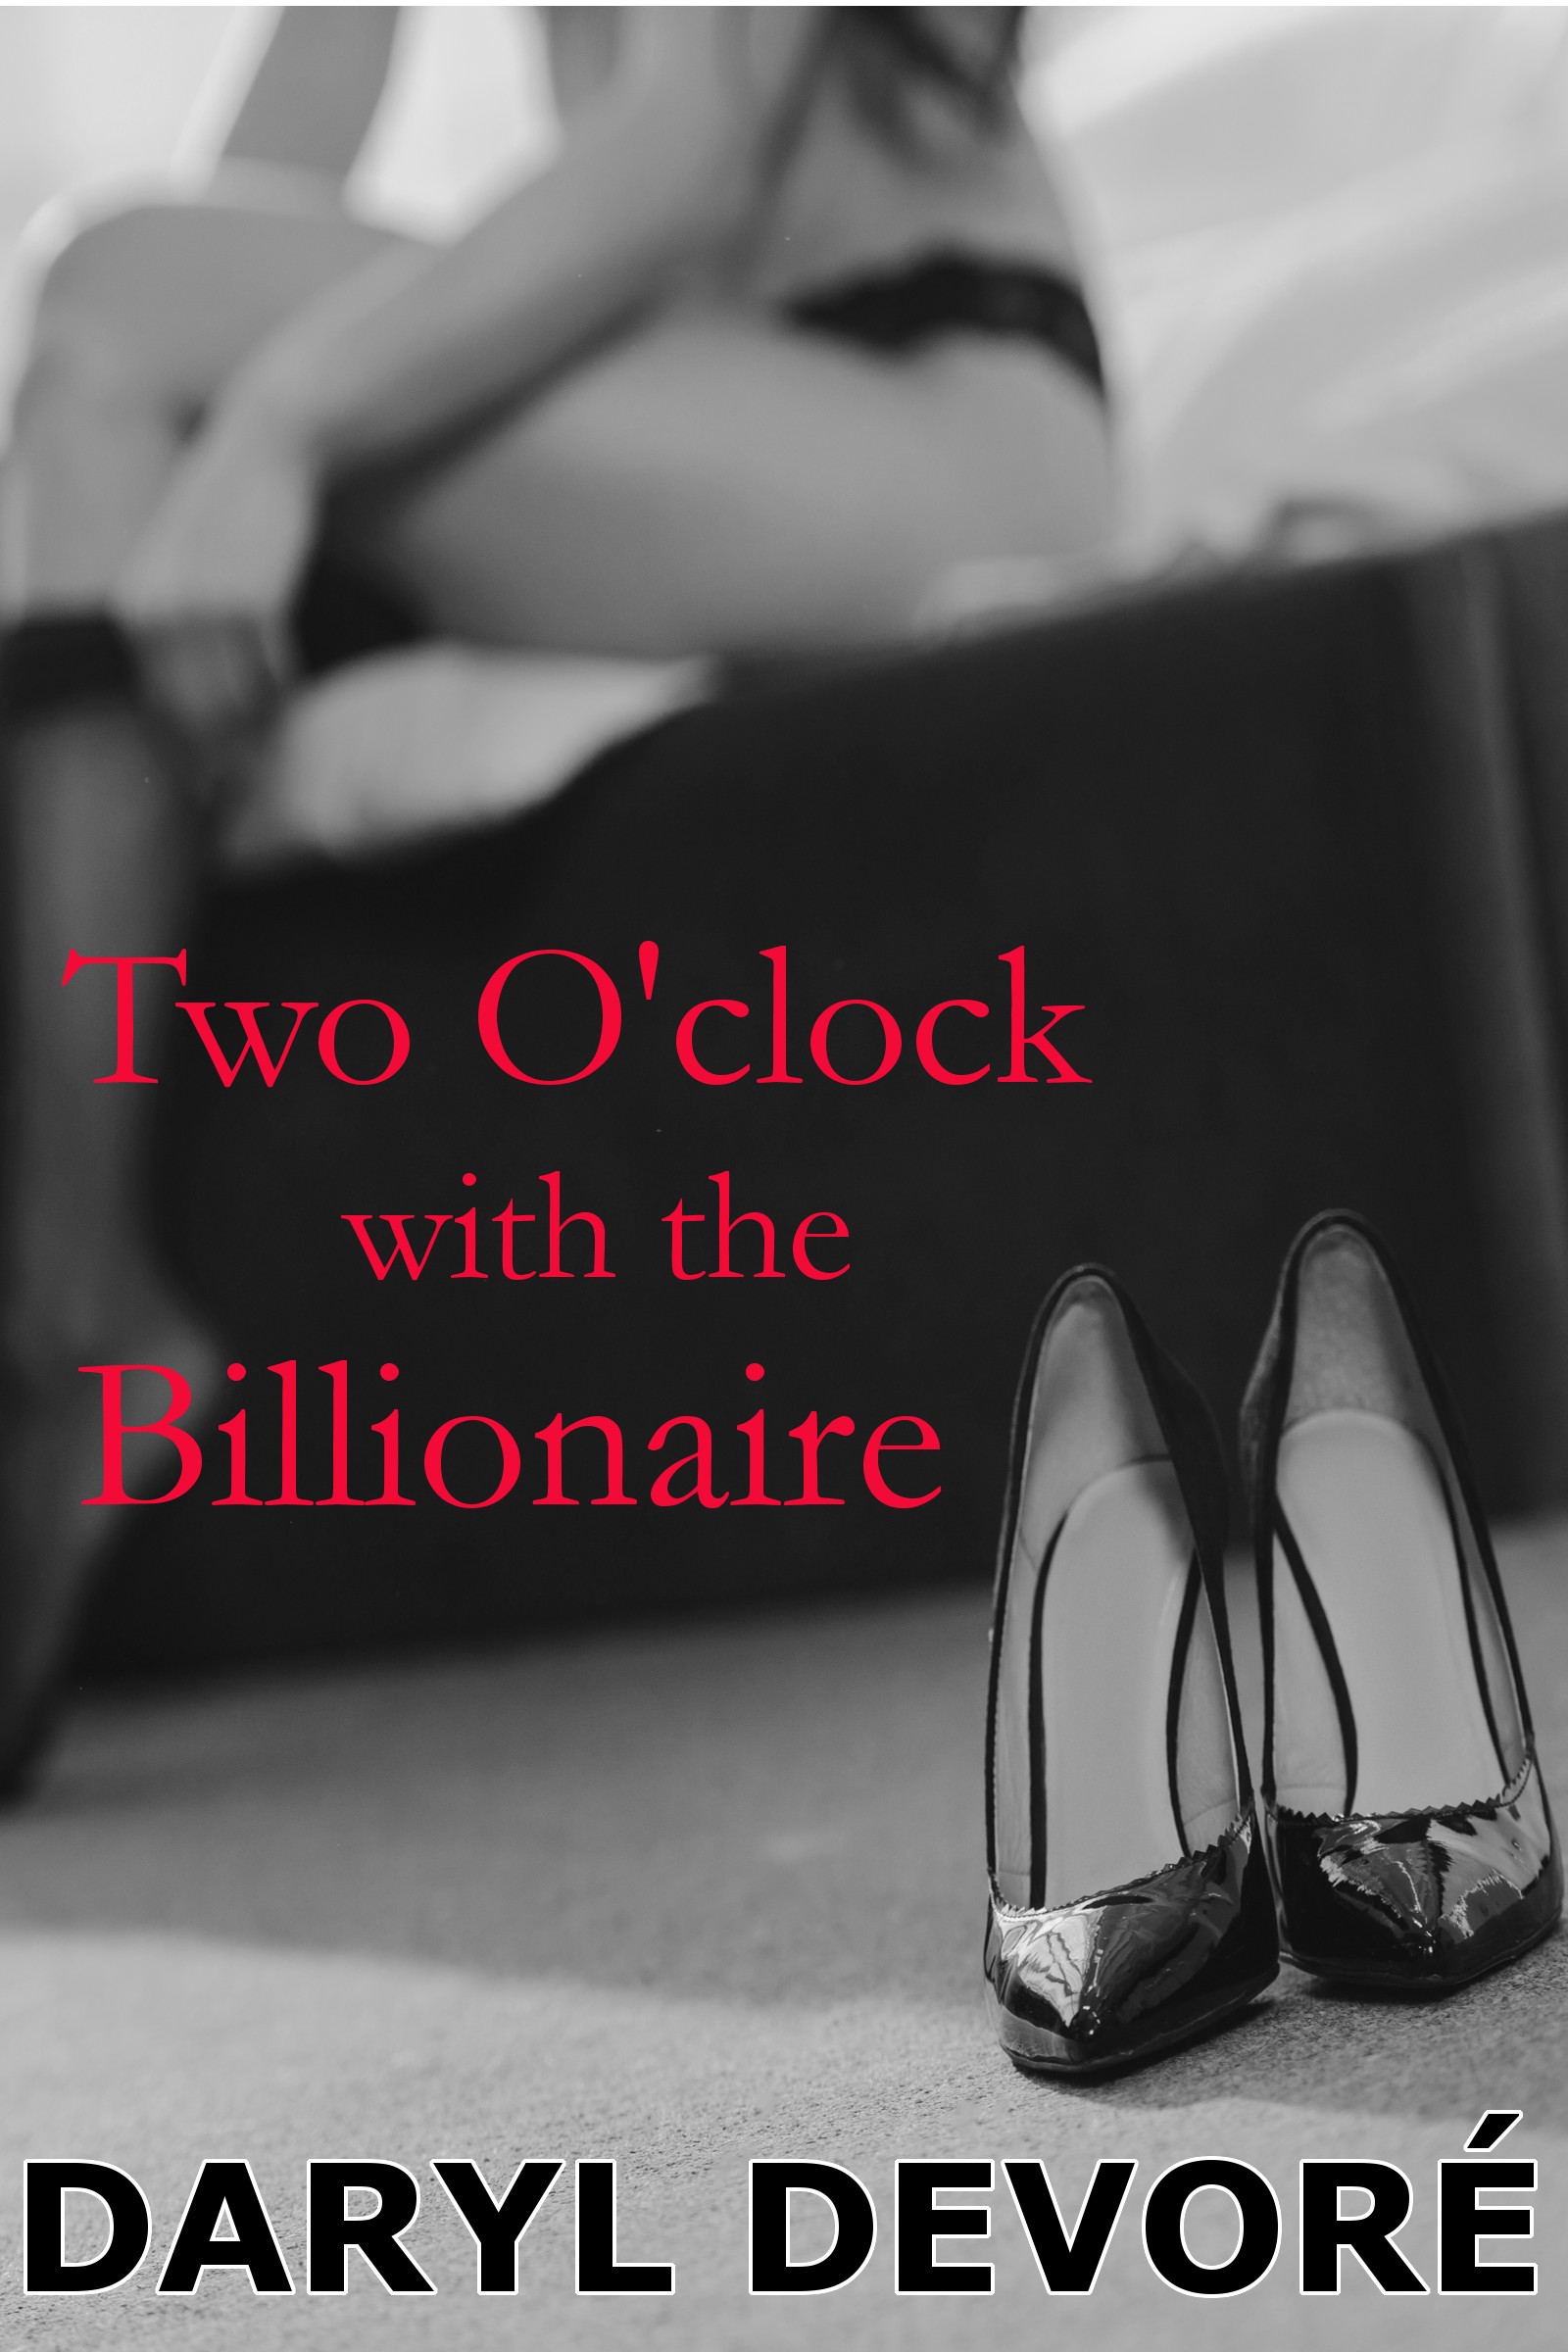 Two O'clock with the Billionaire-DD Cover 2.jpg